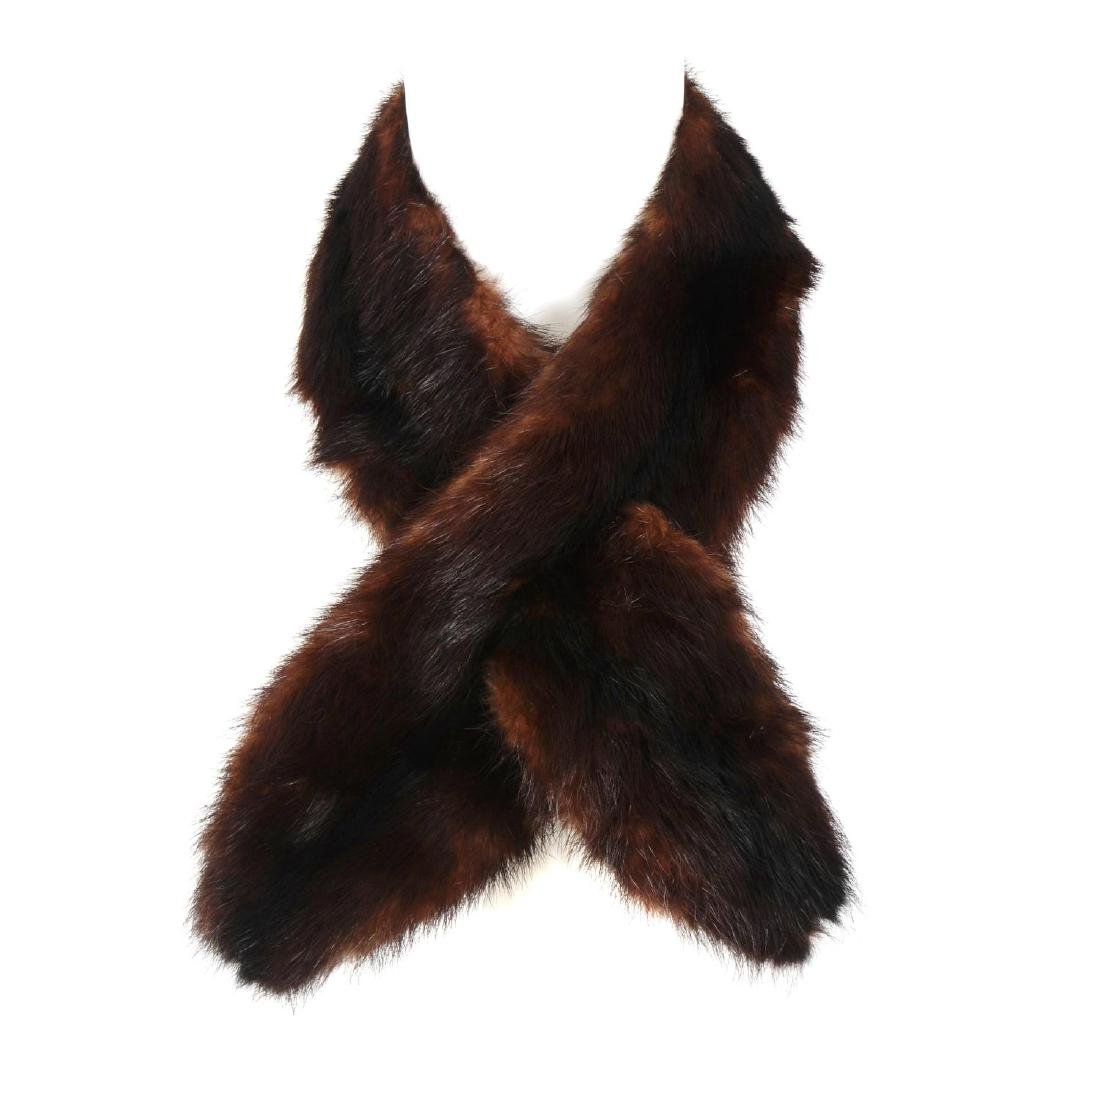 A selection of fur accessories. To include four fur